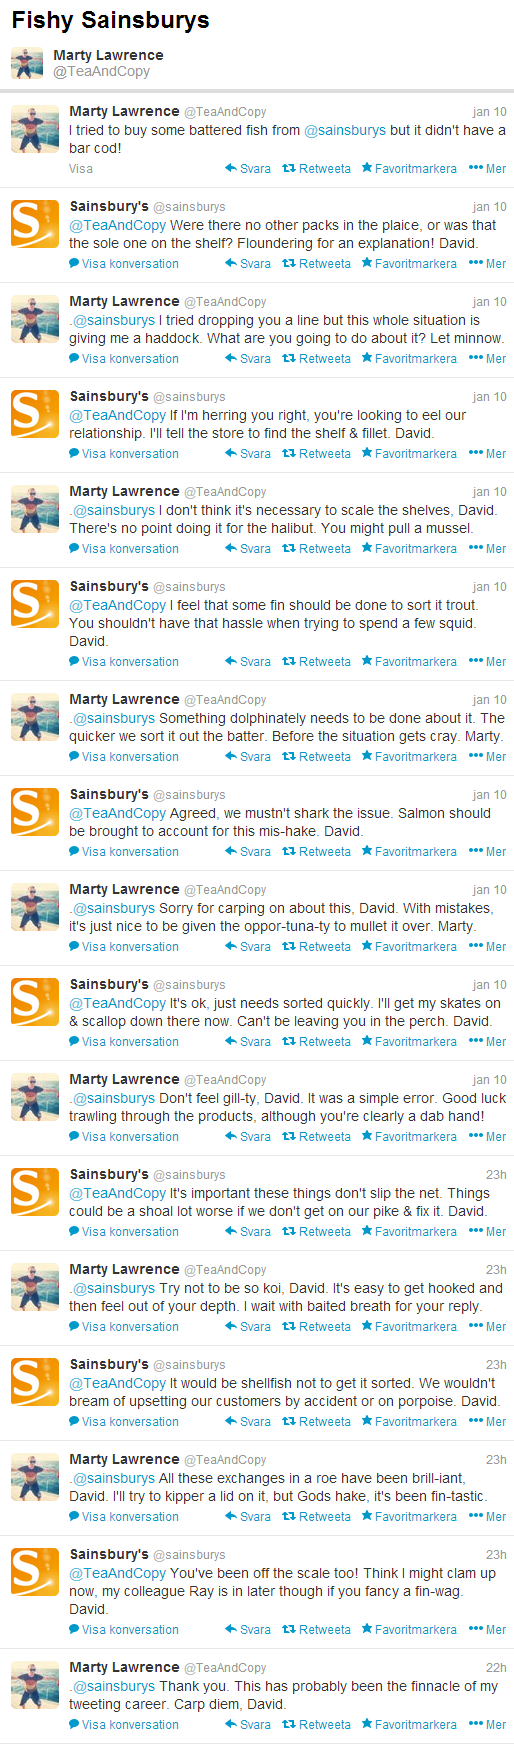 Fishy Sainsburys - clever response on Twitter